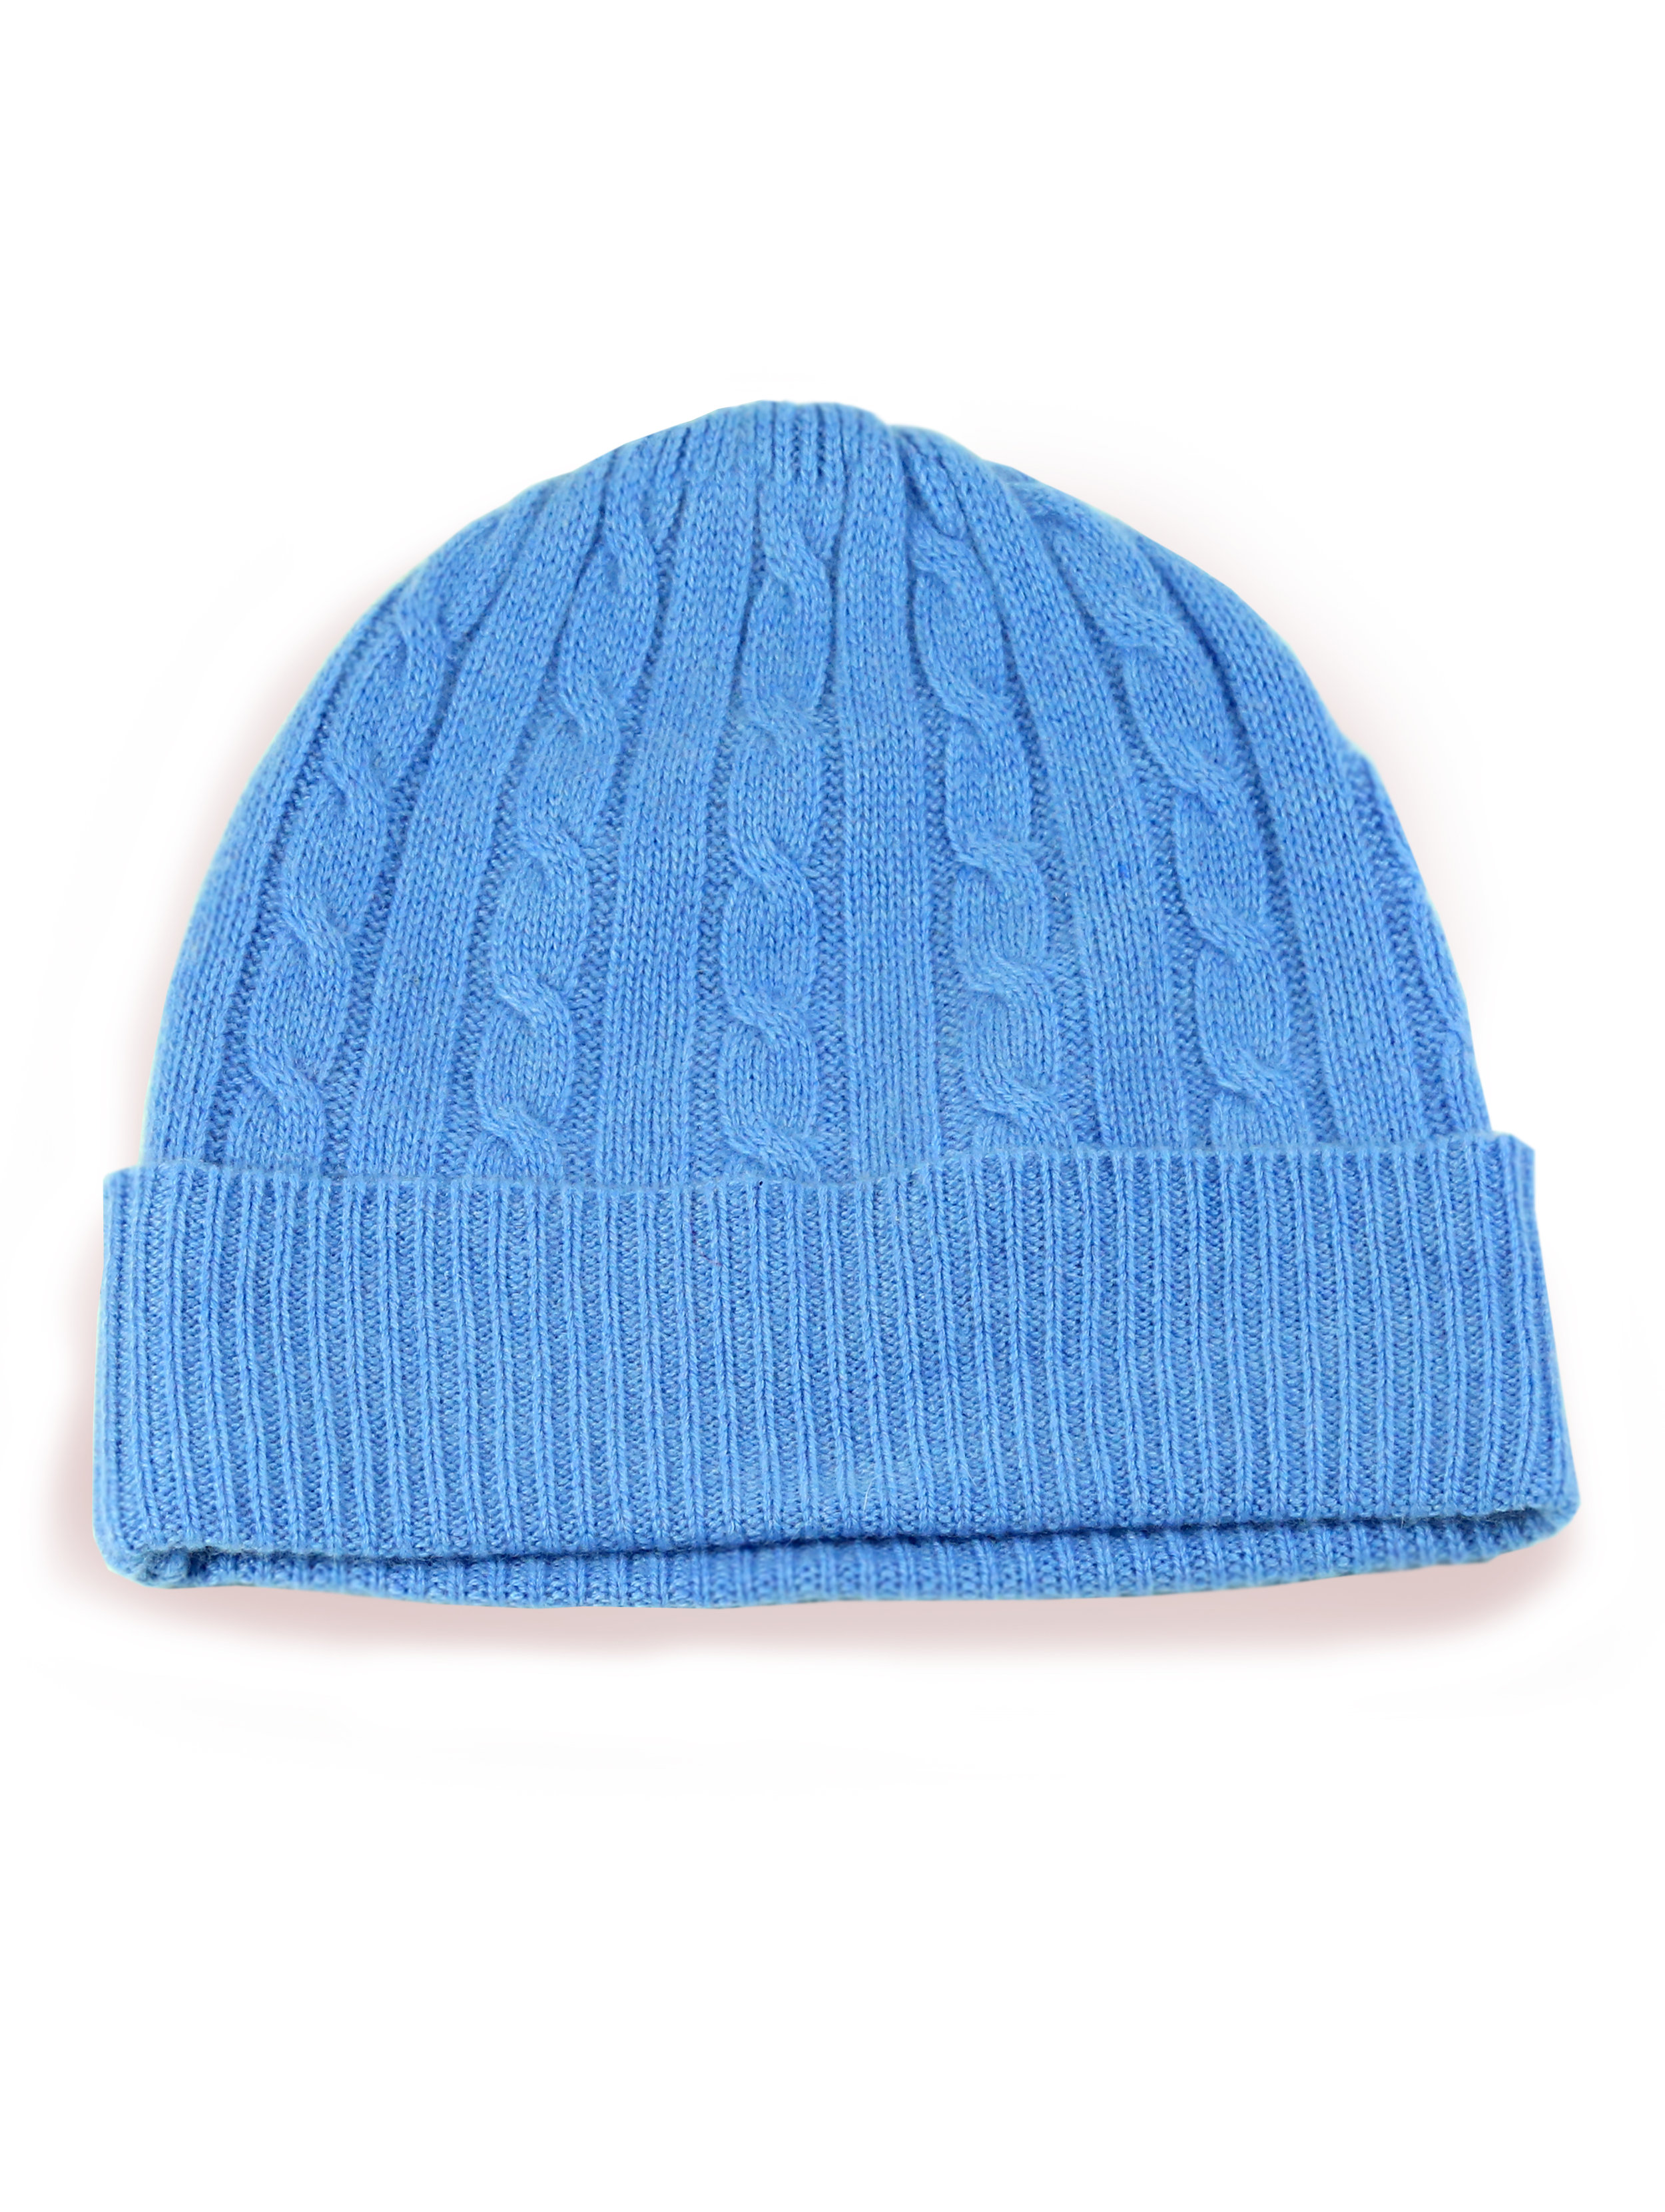 Beanies - Mongolian Cashmere Beanies leave you warm and cosy and provide a splash of colour to your winter wardrobe..